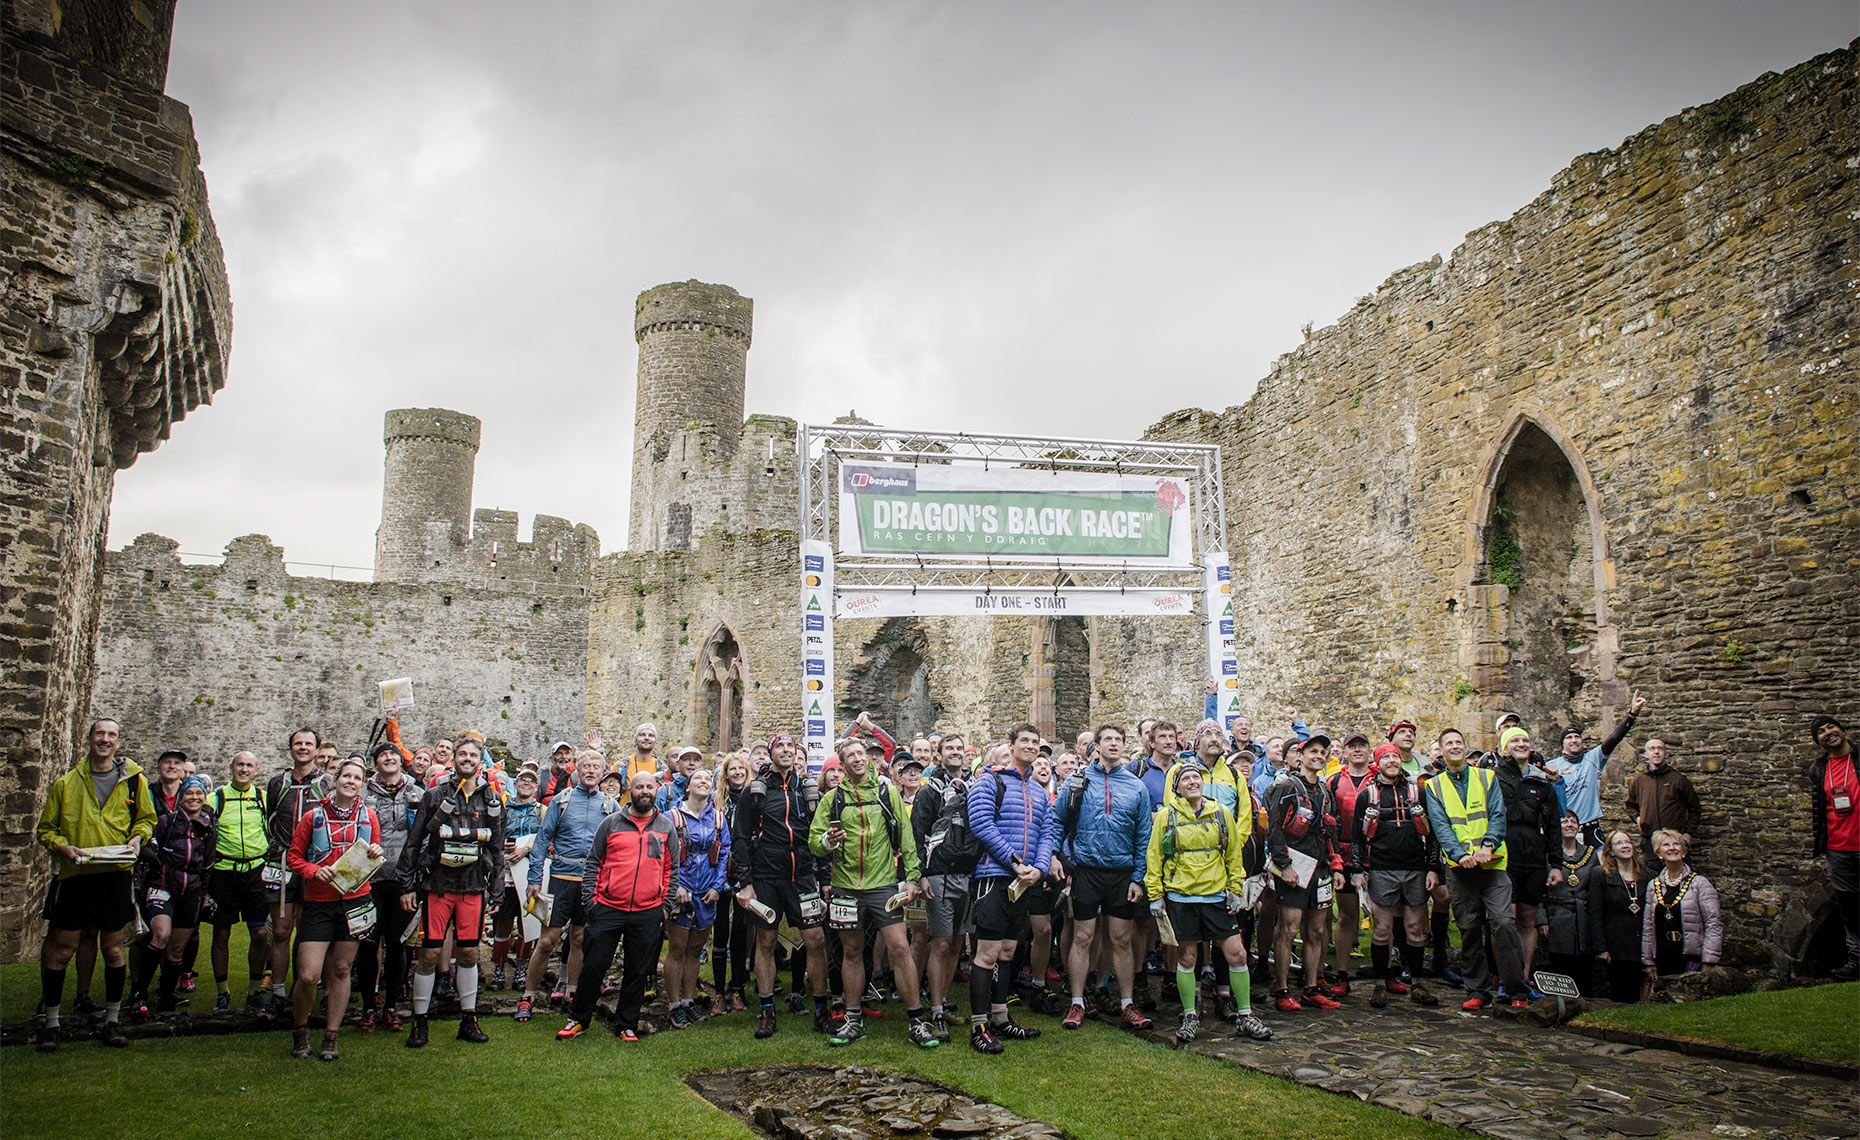 Berghaus Dragons Back Race 2015 start, Conwy Castle